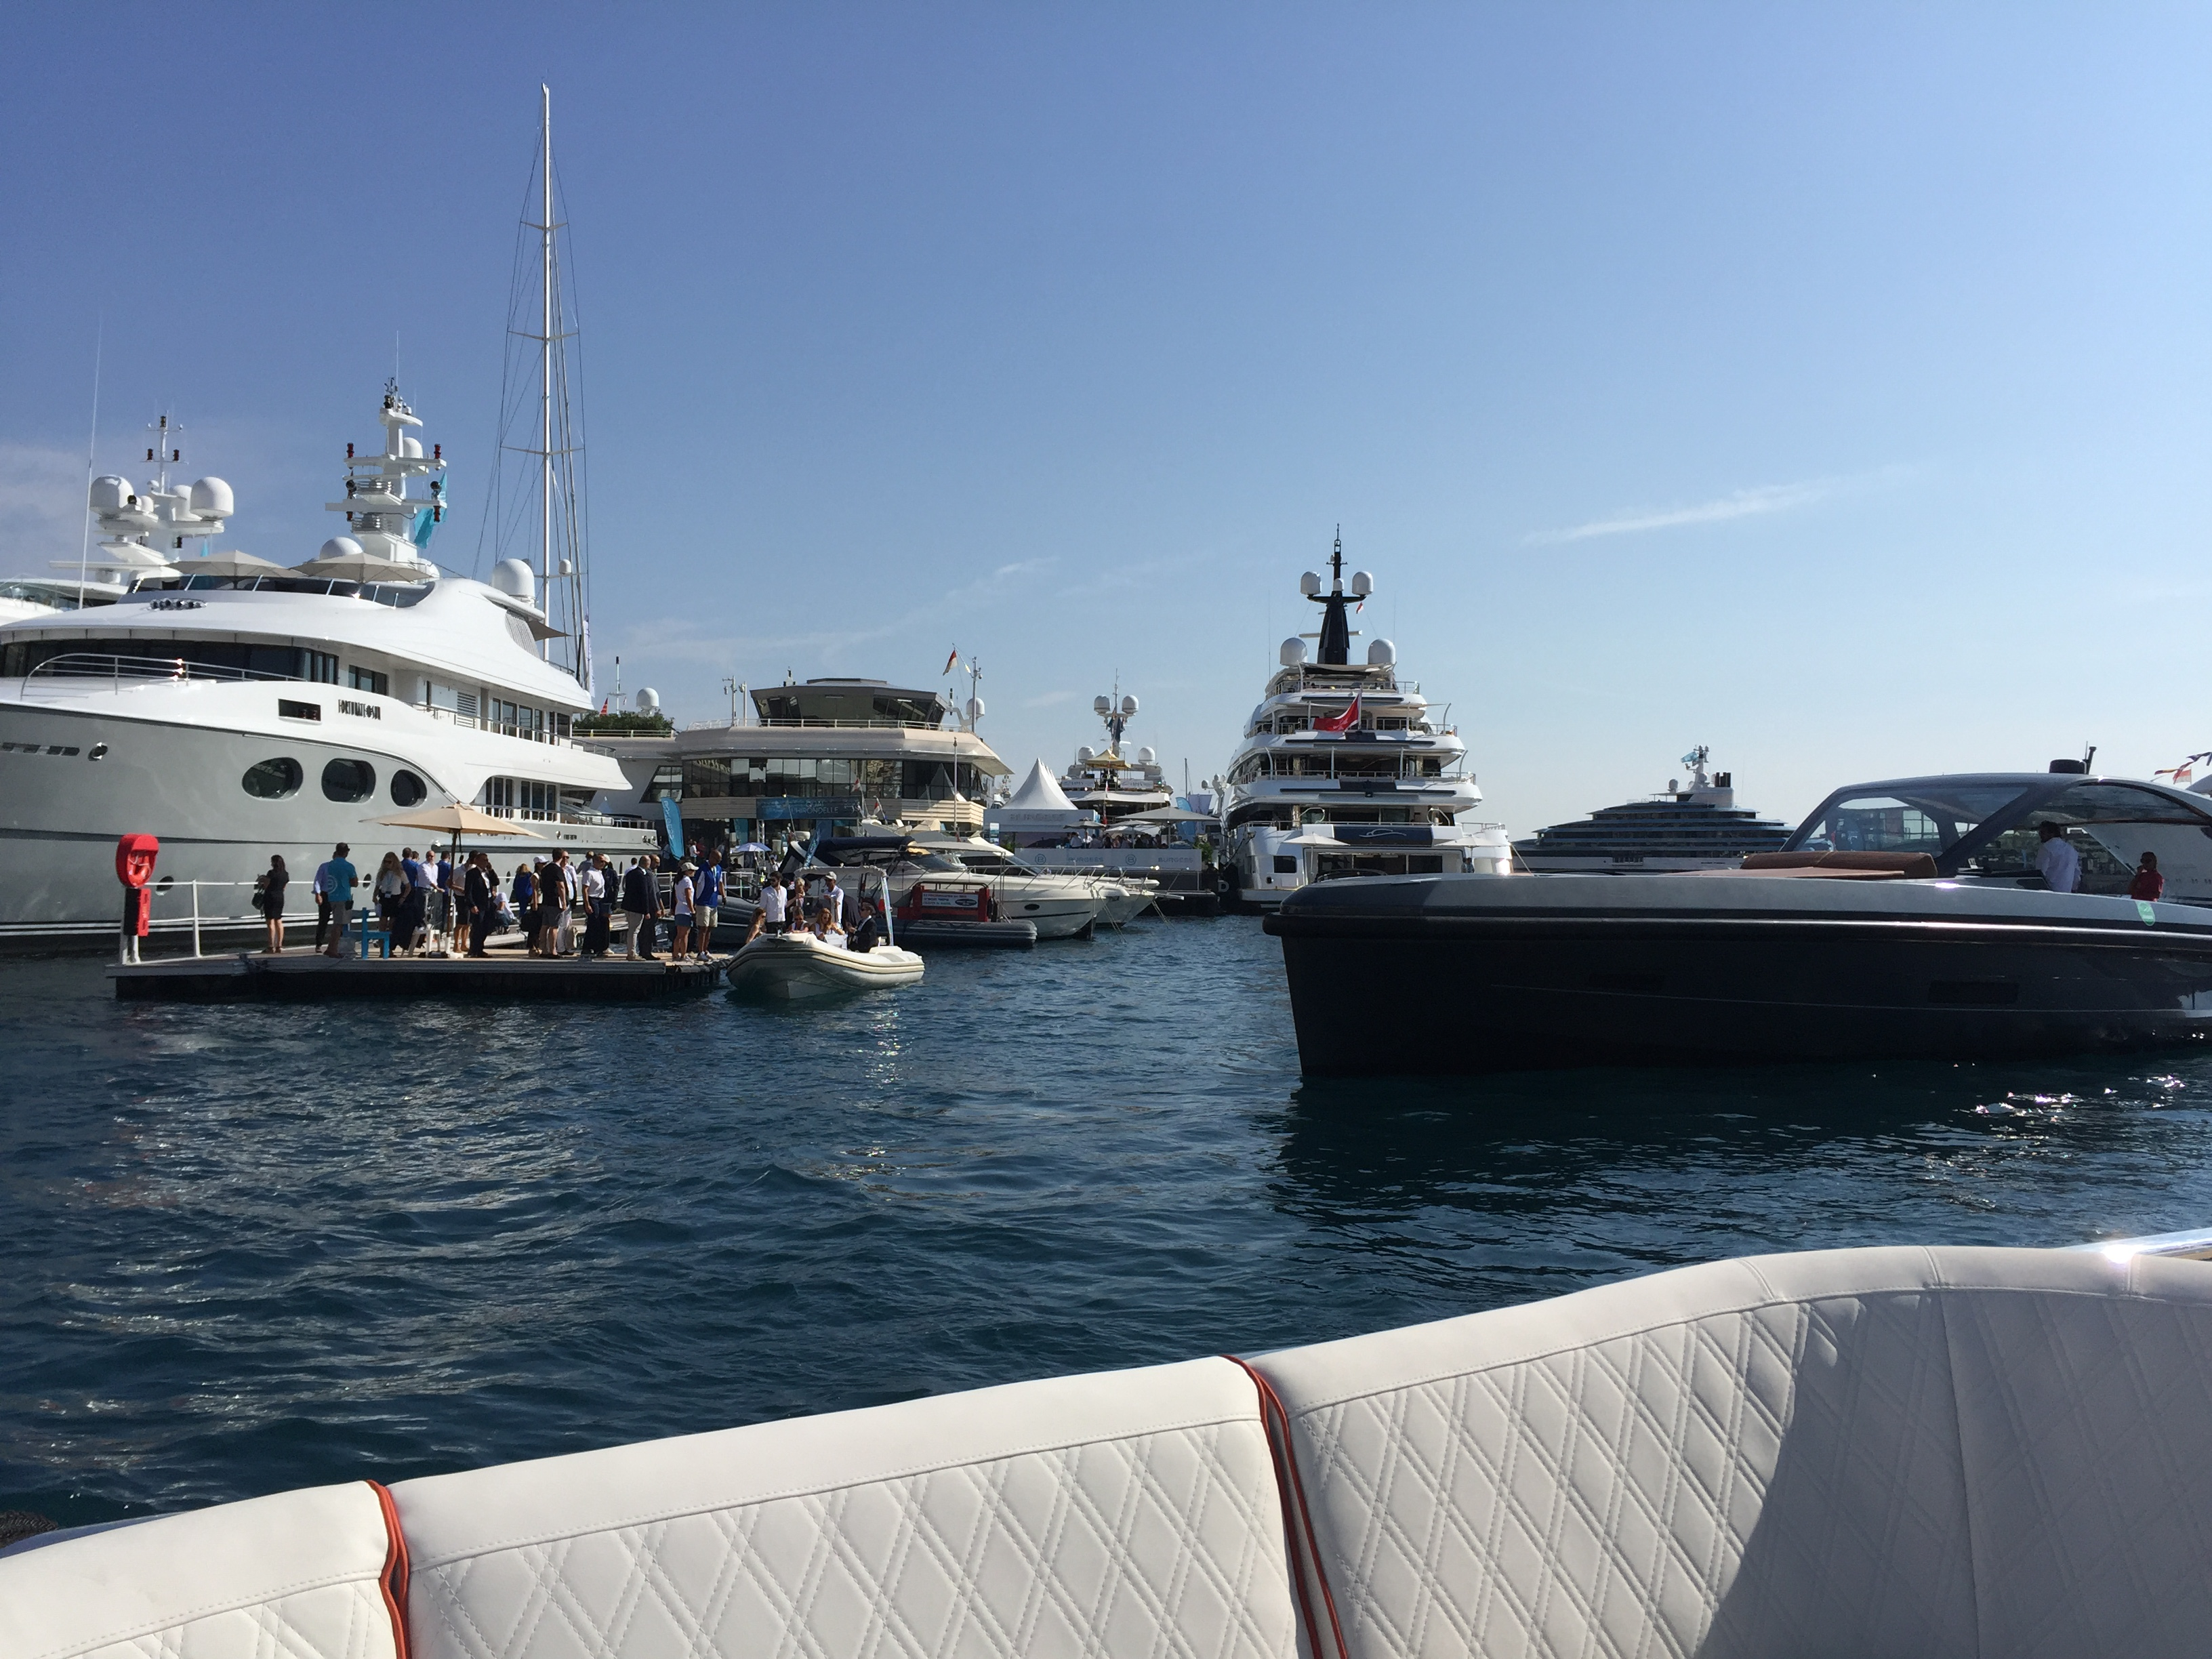 Guests viewing the yachts at the Monaco show